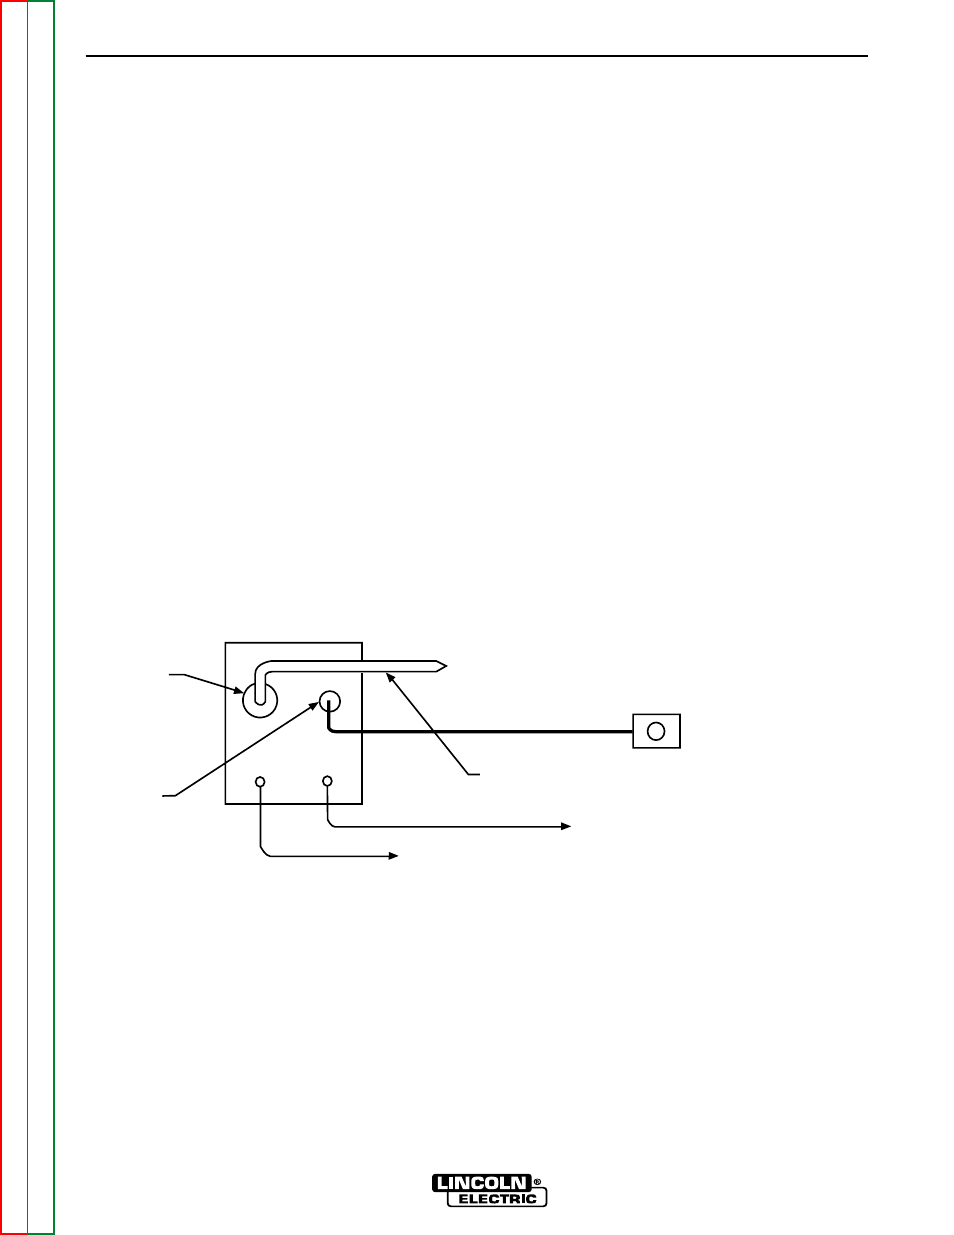 Accessories Lincoln Electric Invertec V350 Pro Svm152 A User Welder Wiring Diagram Manual Page 22